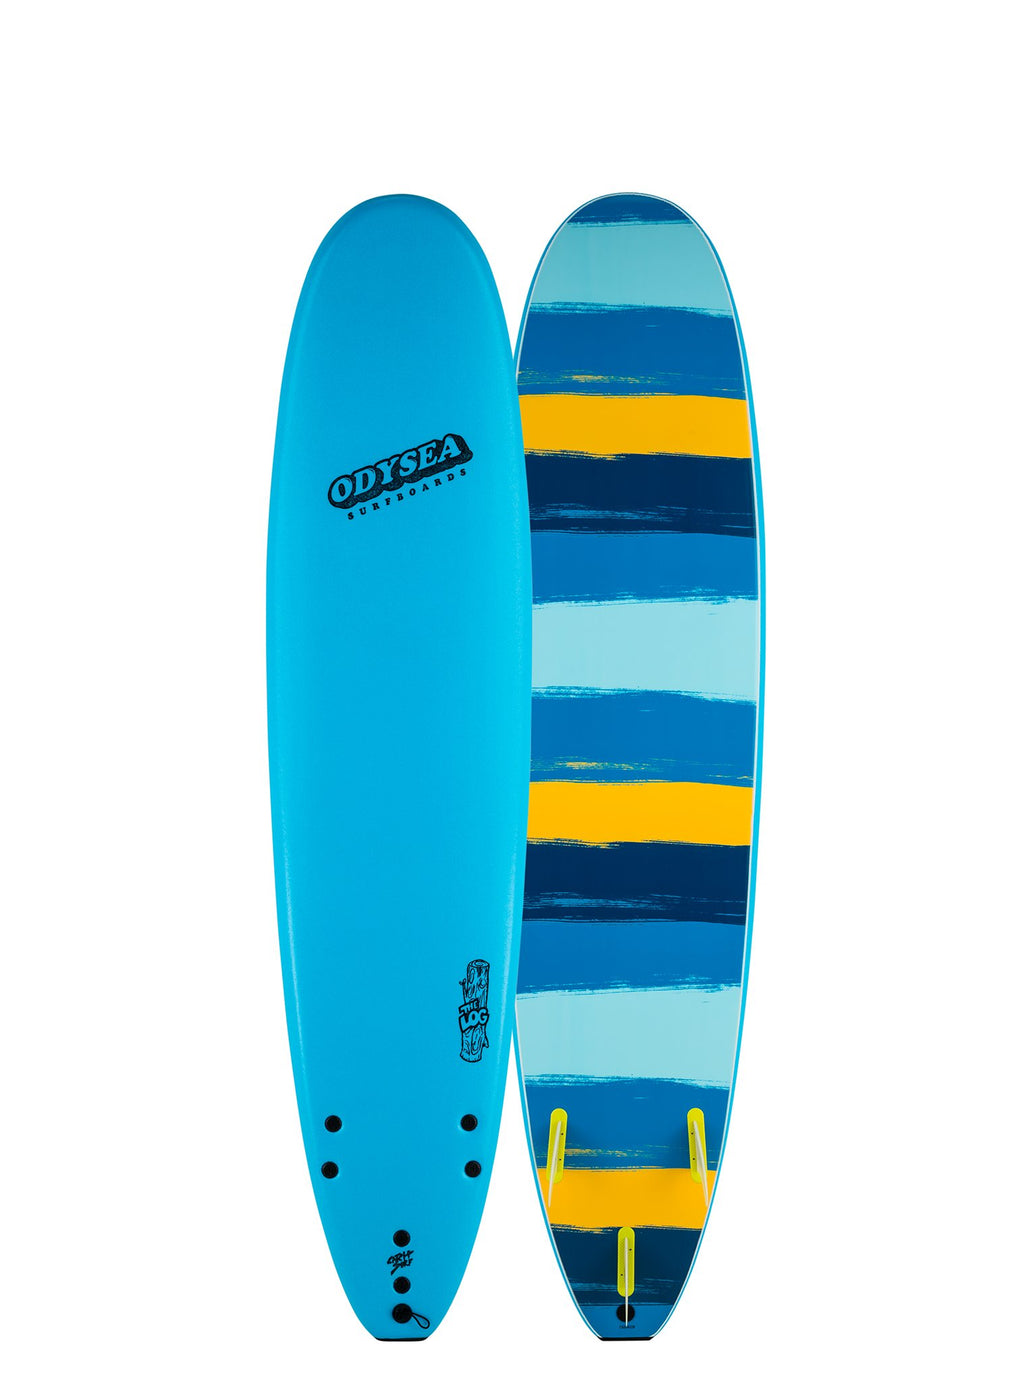 "Odysea LOG 7' 0"" Cool Blue"